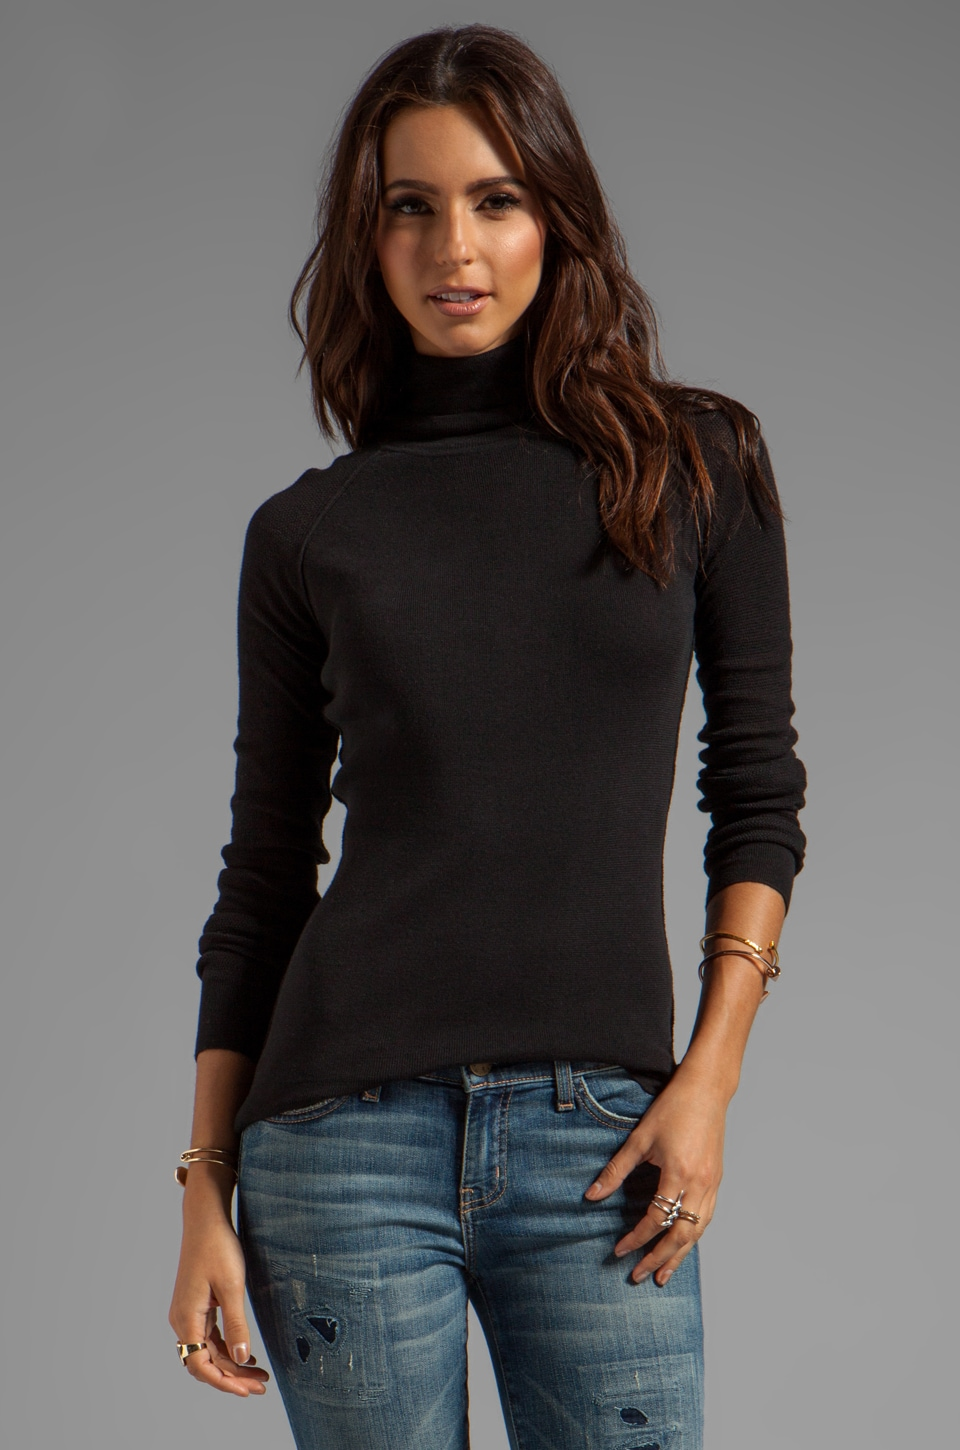 Inhabit Cotton Turtleneck in Black